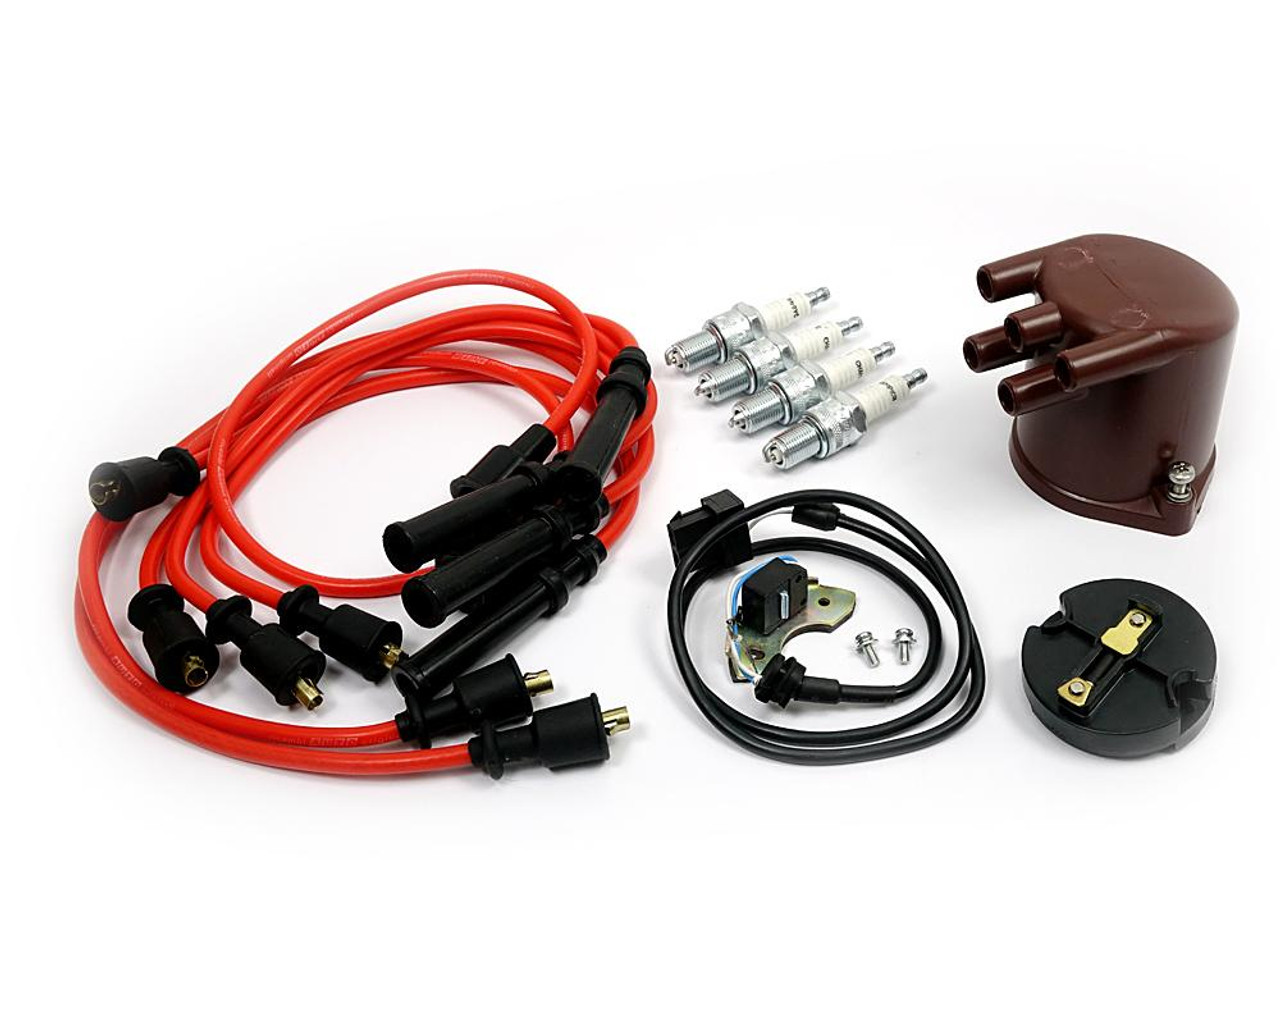 Ignition Tune-up Kit 1979-85 - SAVE 10%